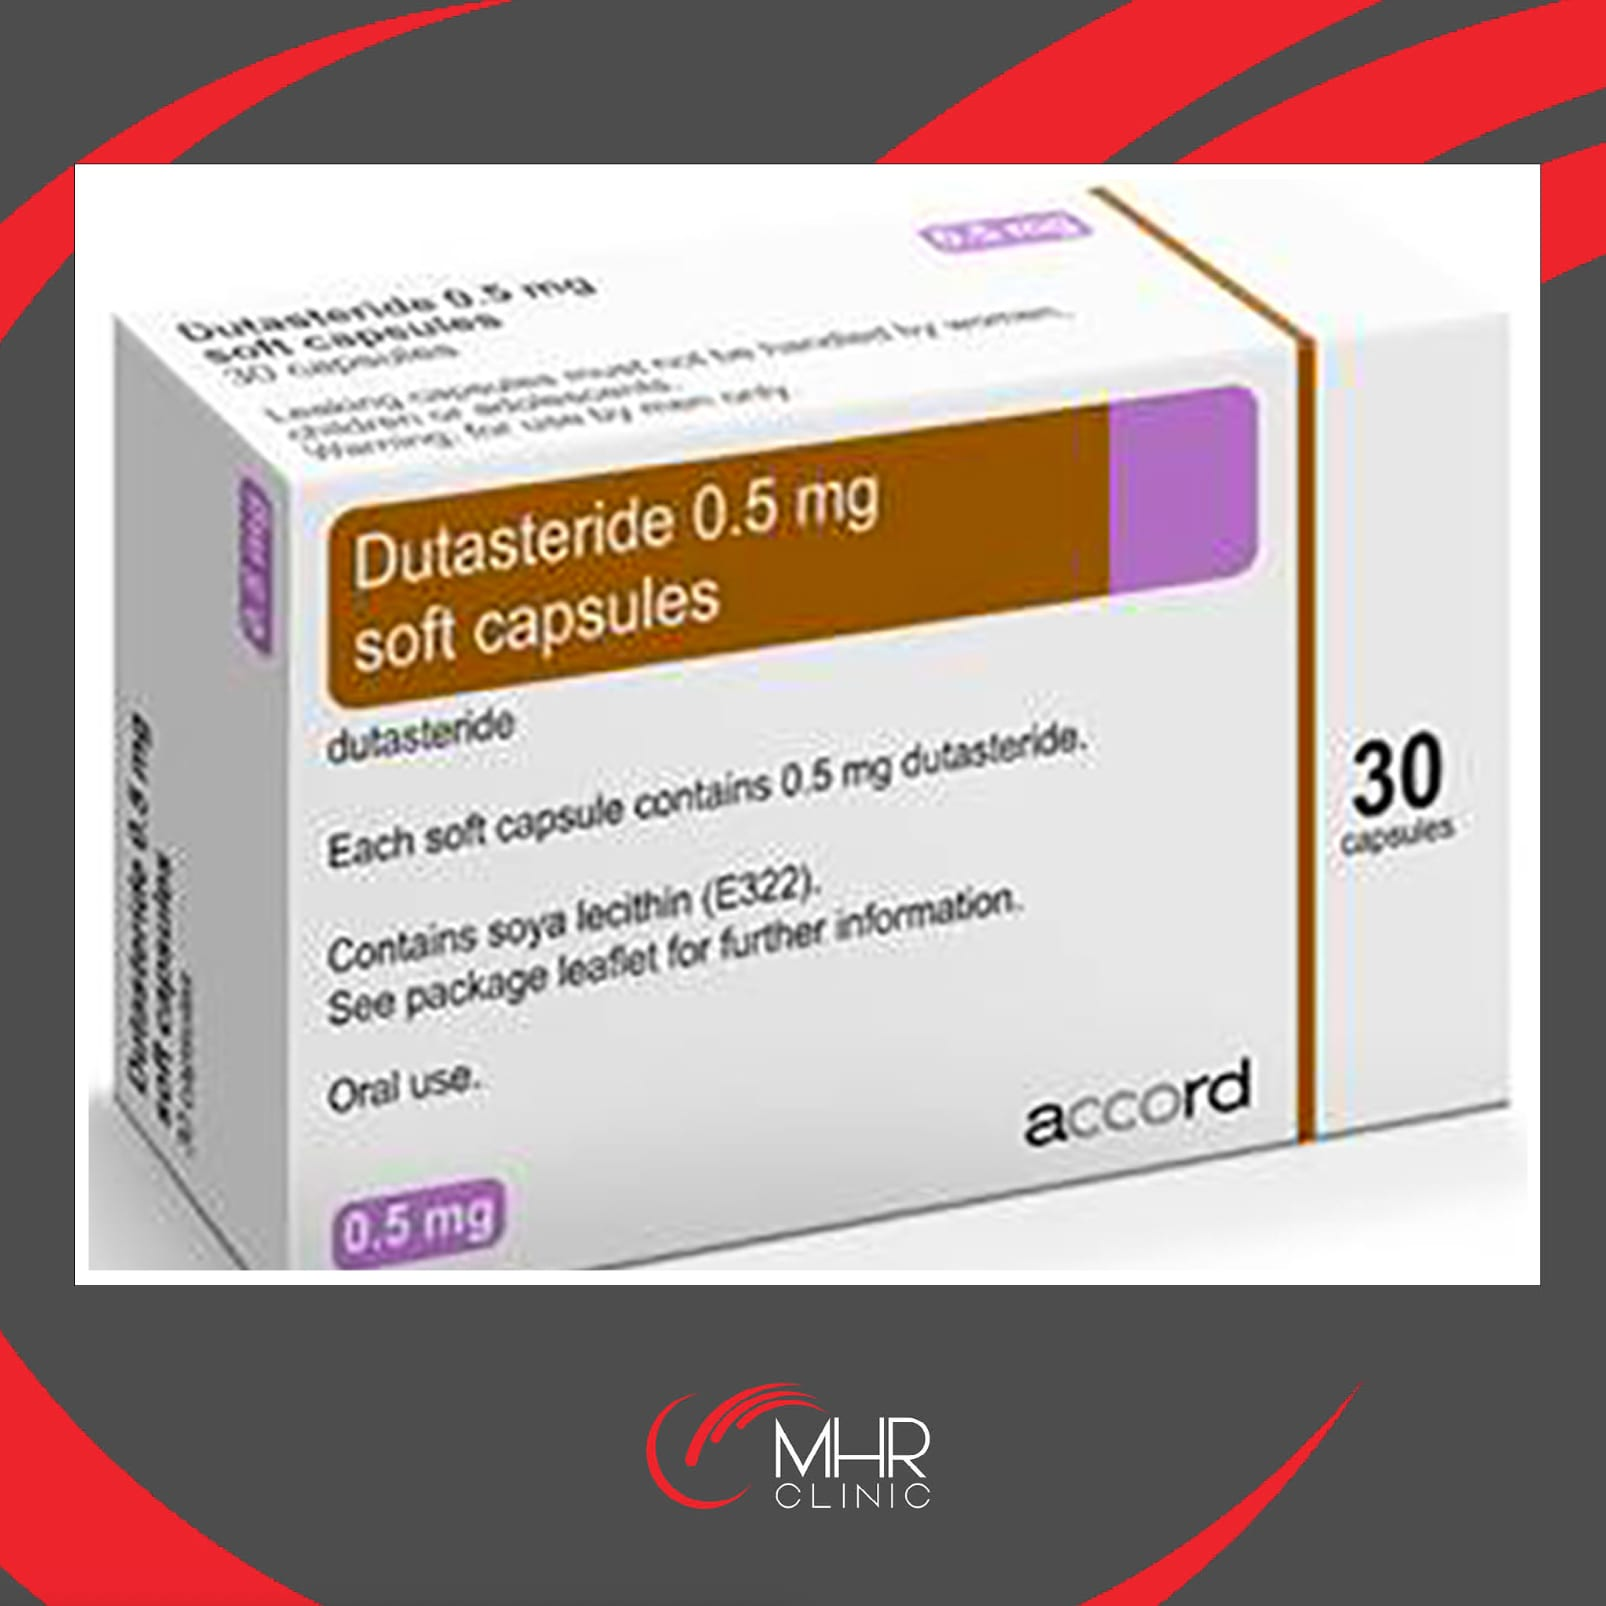 Dutasteride 0 5mg Tablets 30 Tablets Mhr Clinic Hair Restoration Specialists